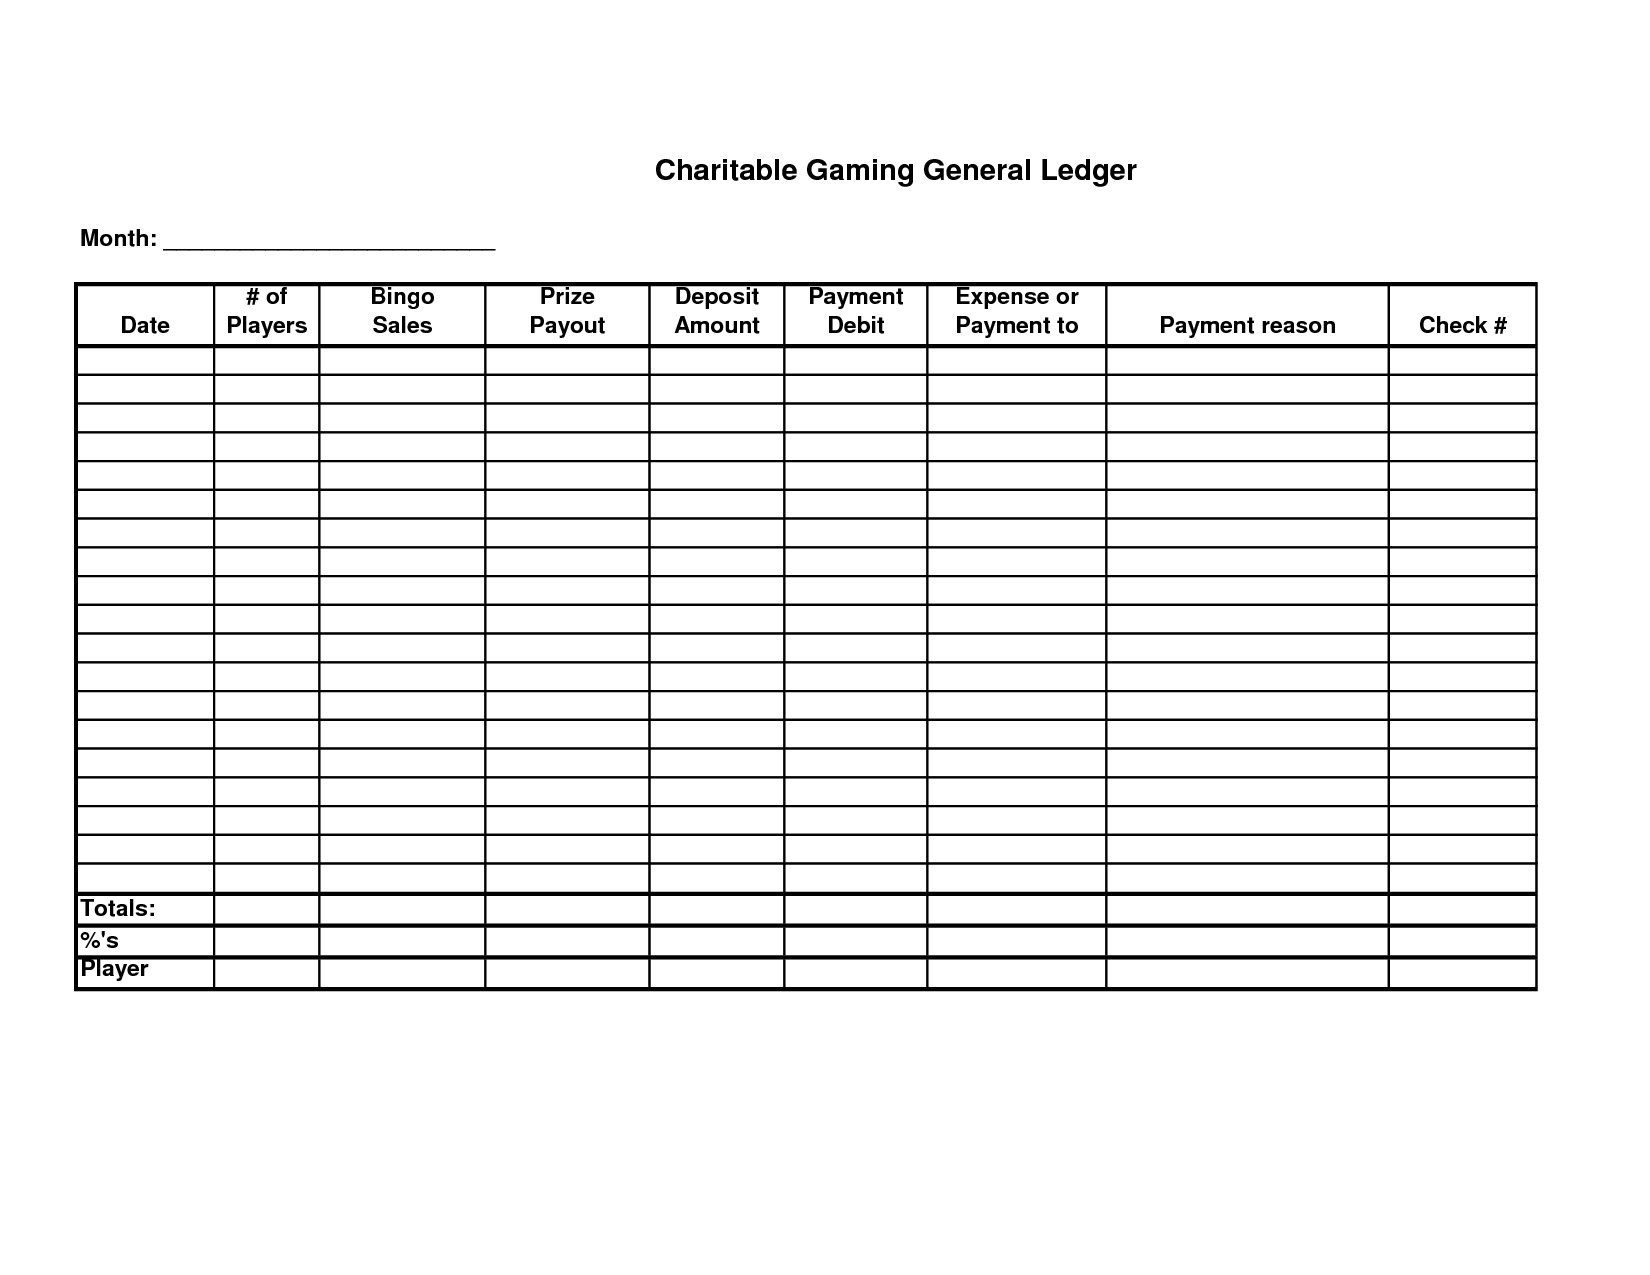 photo regarding Printable Ledger Sheet titled Totally free Printable In general Ledger Sheet Selfmade Things Cost-free